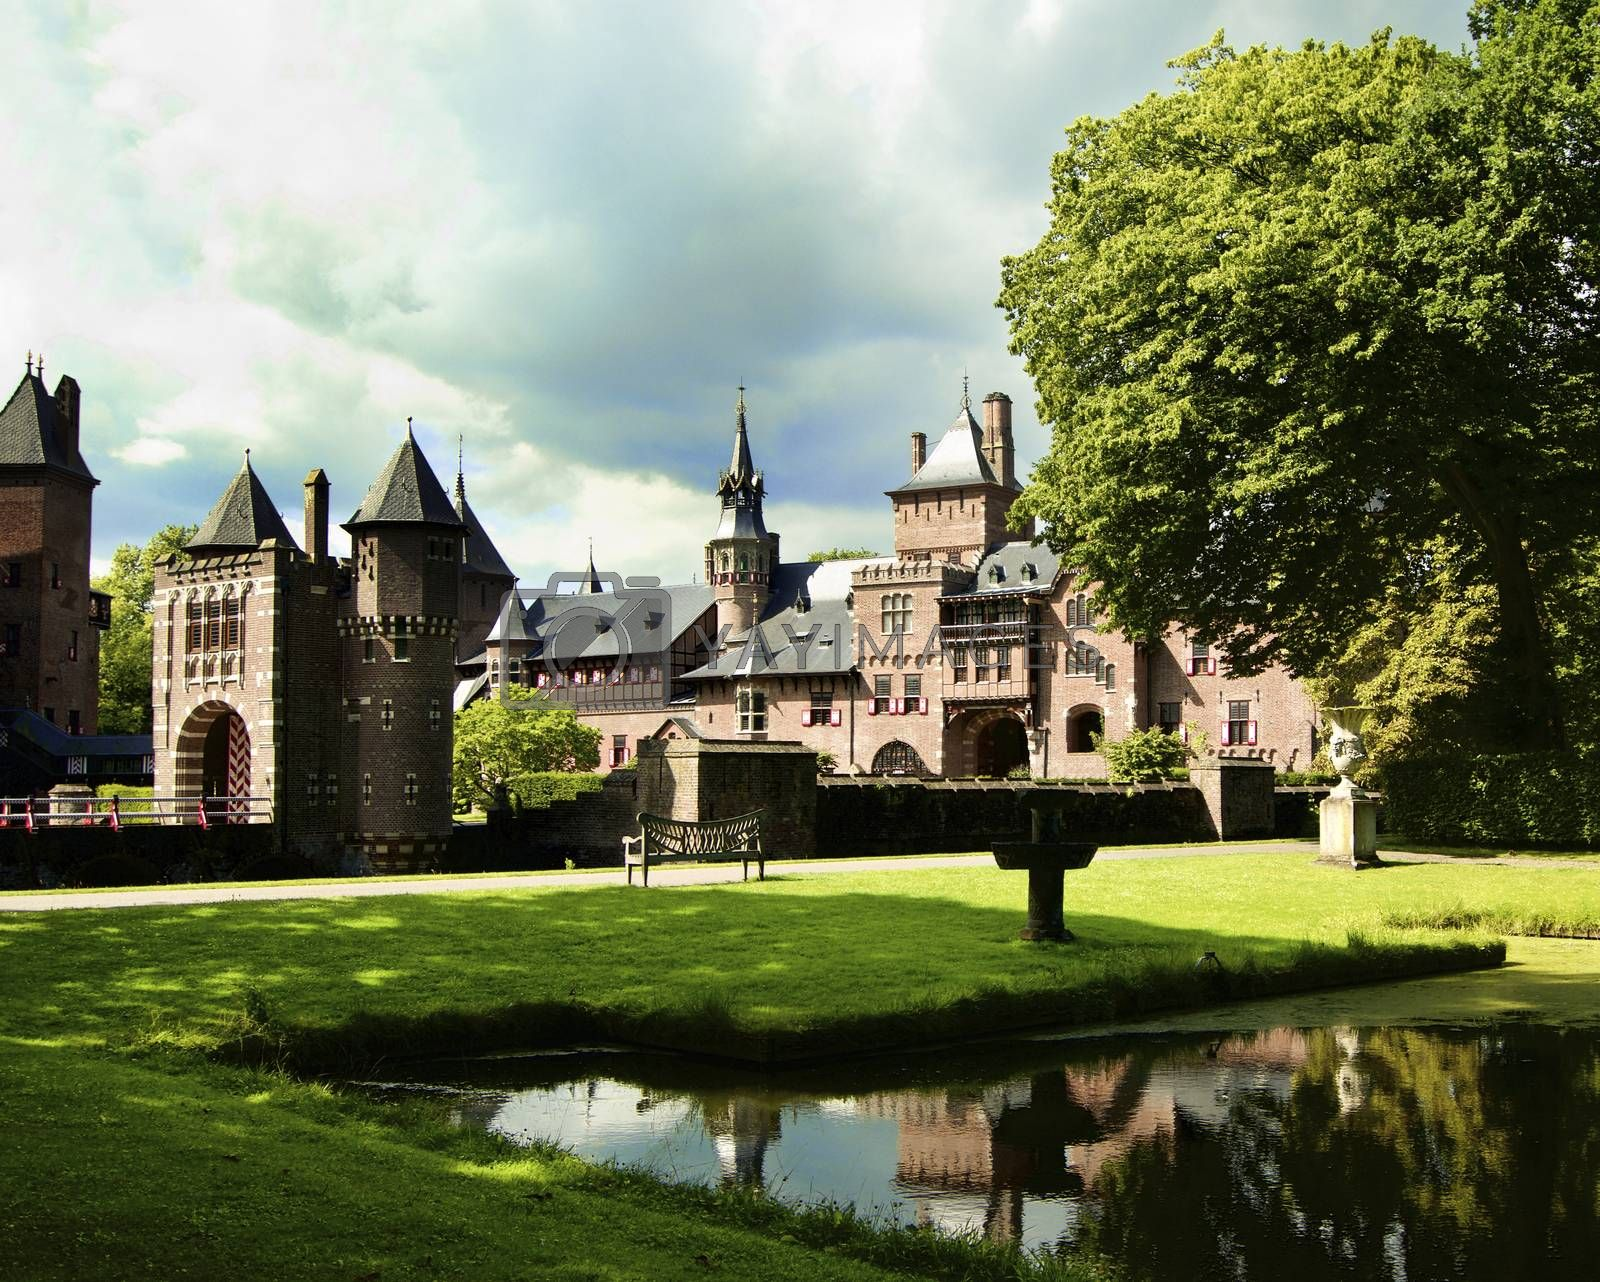 Medieval Castle De Haar from side of Back Yard with Reflection on Pond against Cloudy Sky Outdoors. Utrecht, Netherlands